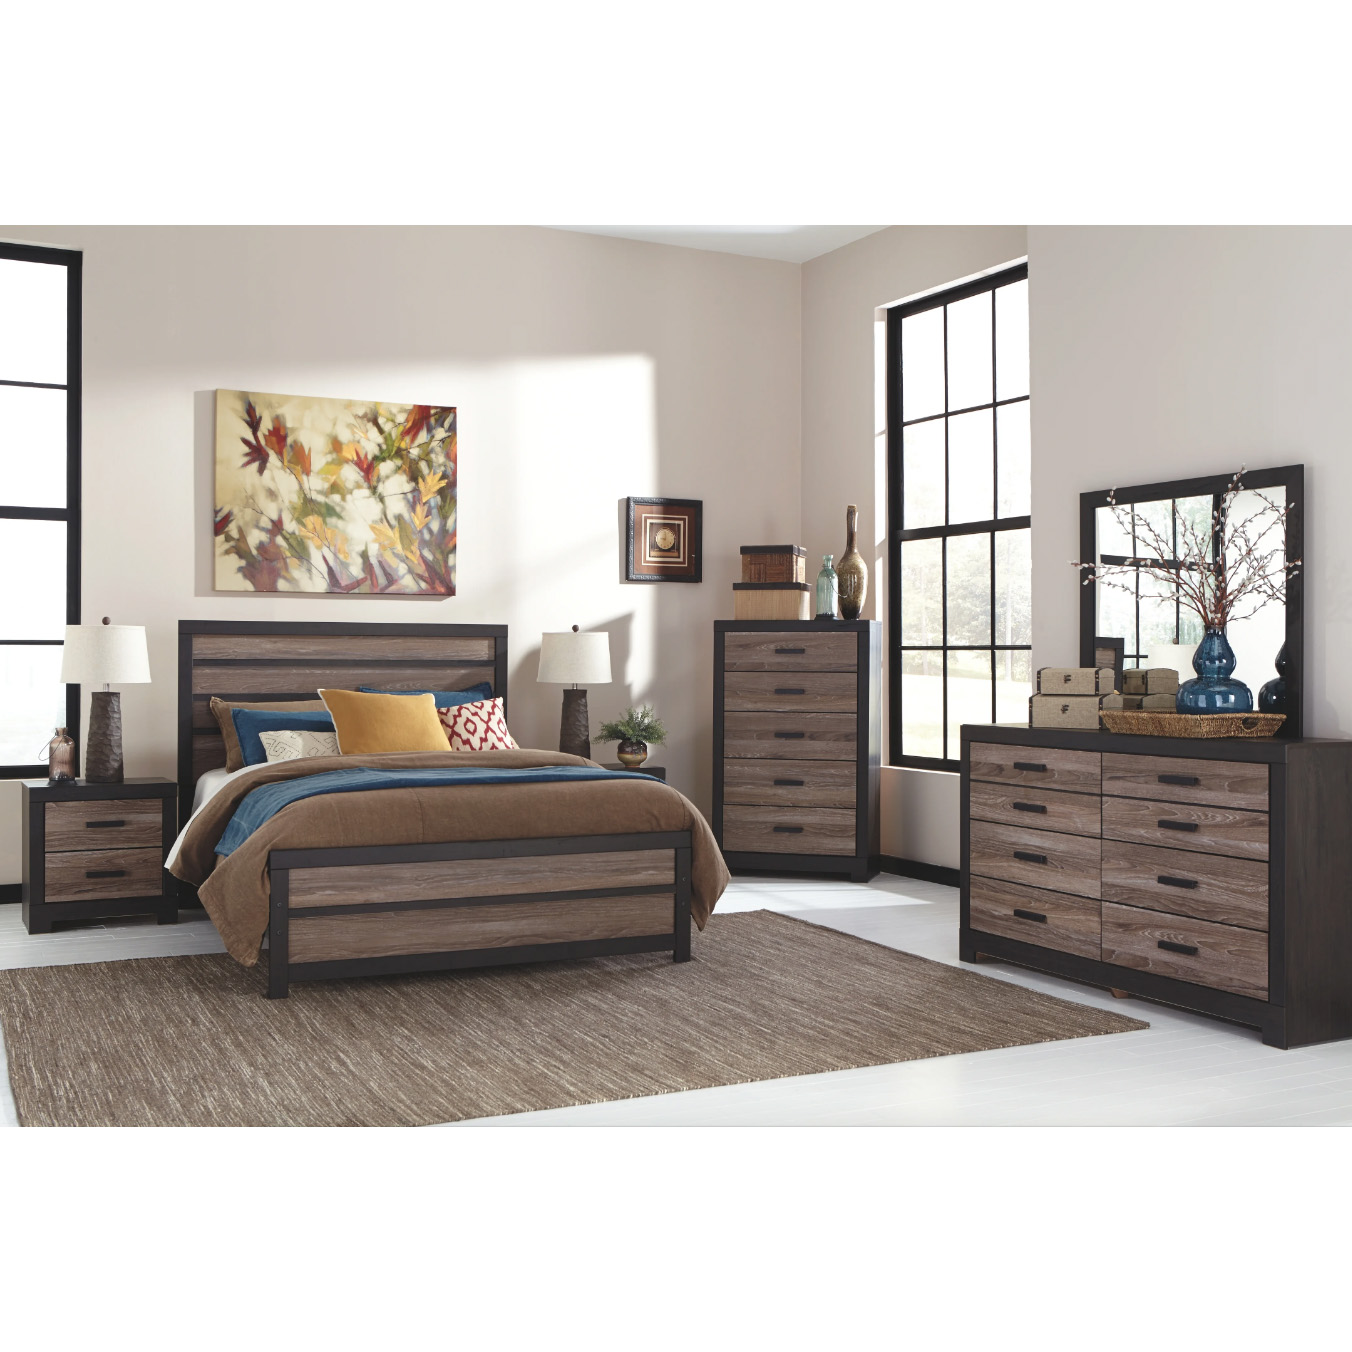 Harlinton - Warm Gray/Charcoal - 6 Pc. - Dresser, Mirror, Chest & Queen Panel Bed